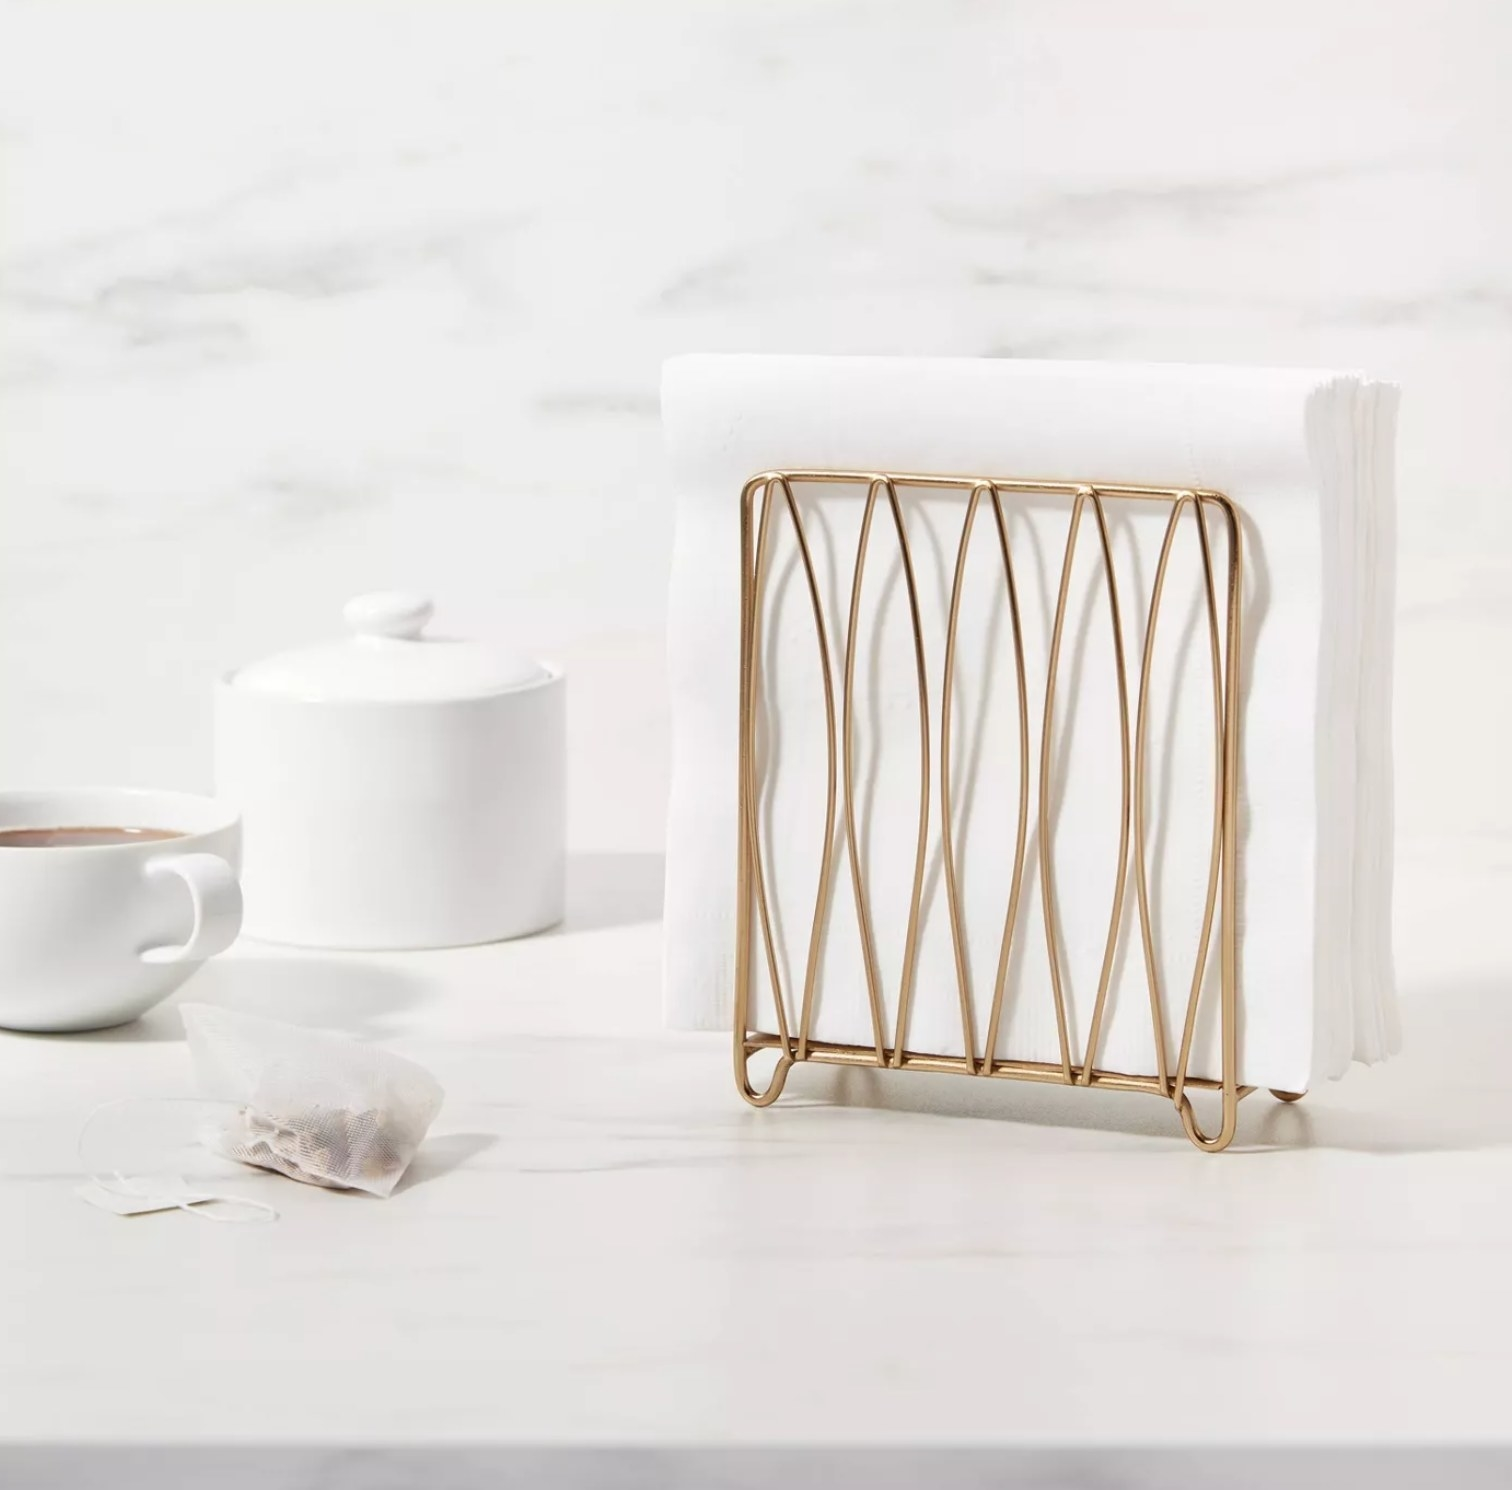 the gold napkin holder with white napkins in it on a counter next to a white mug with a tea bag beside it and a white canister.